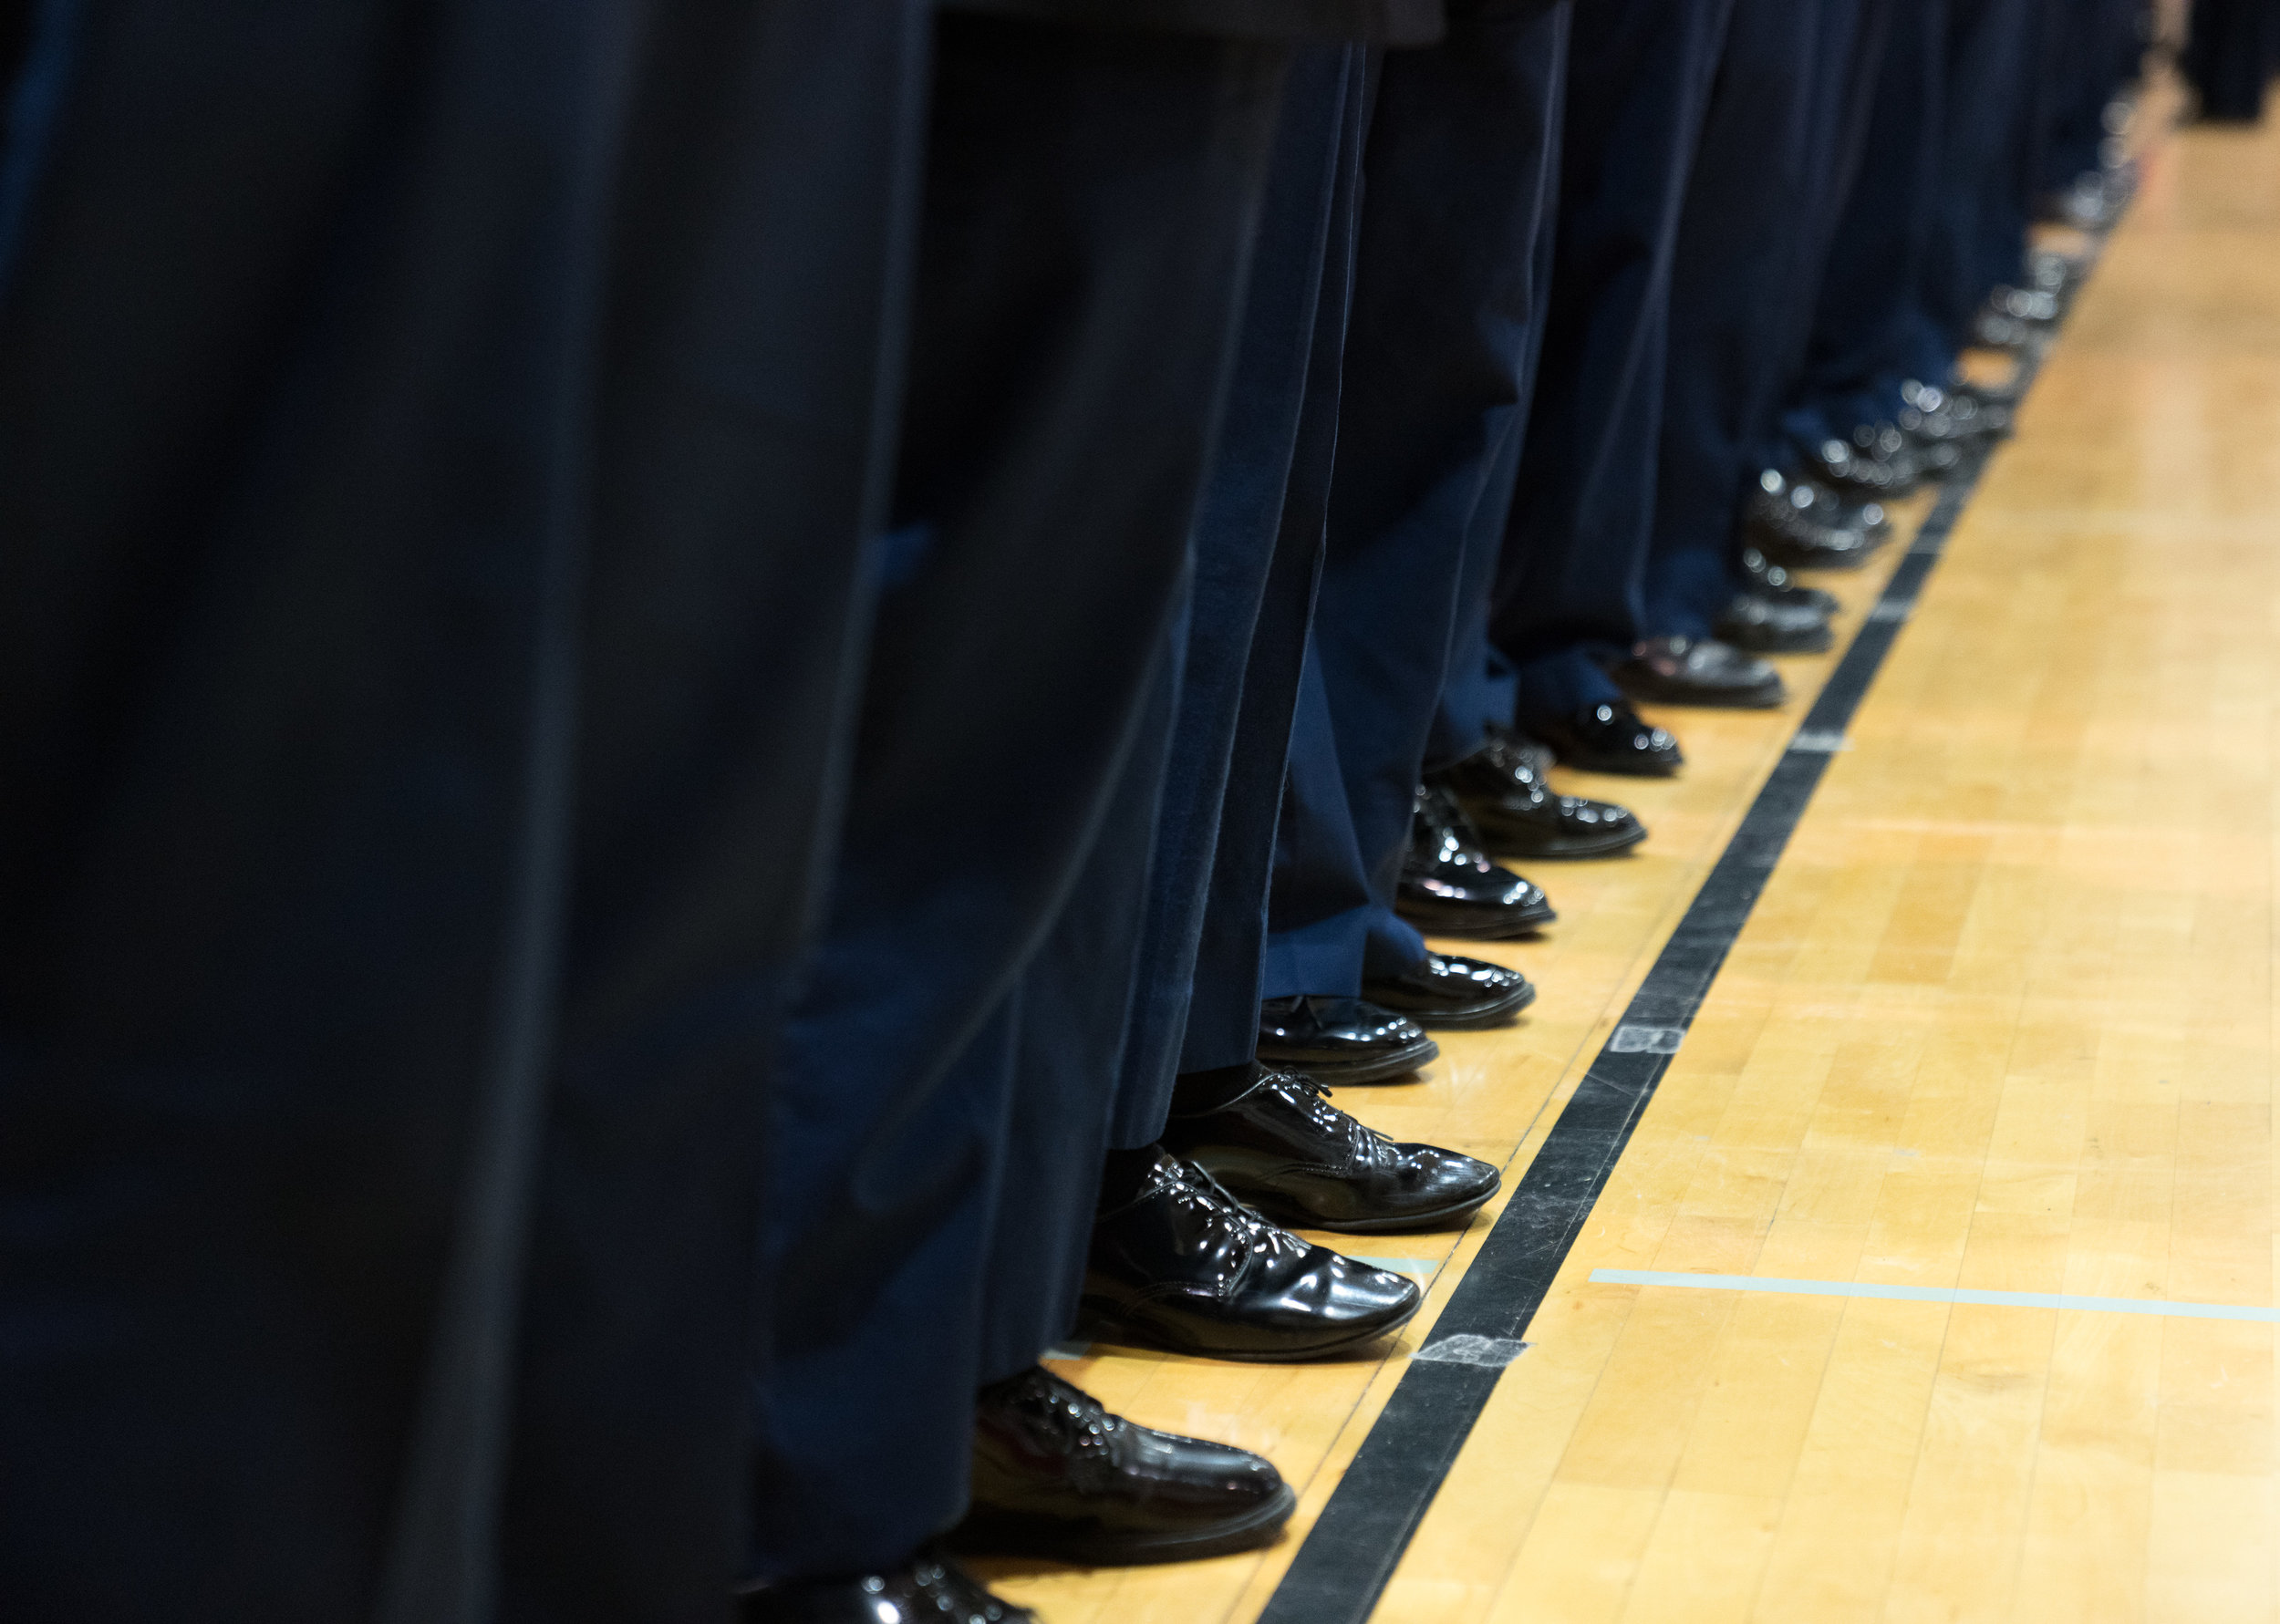 Soldier Factory - A year at a Chicago military academy high school